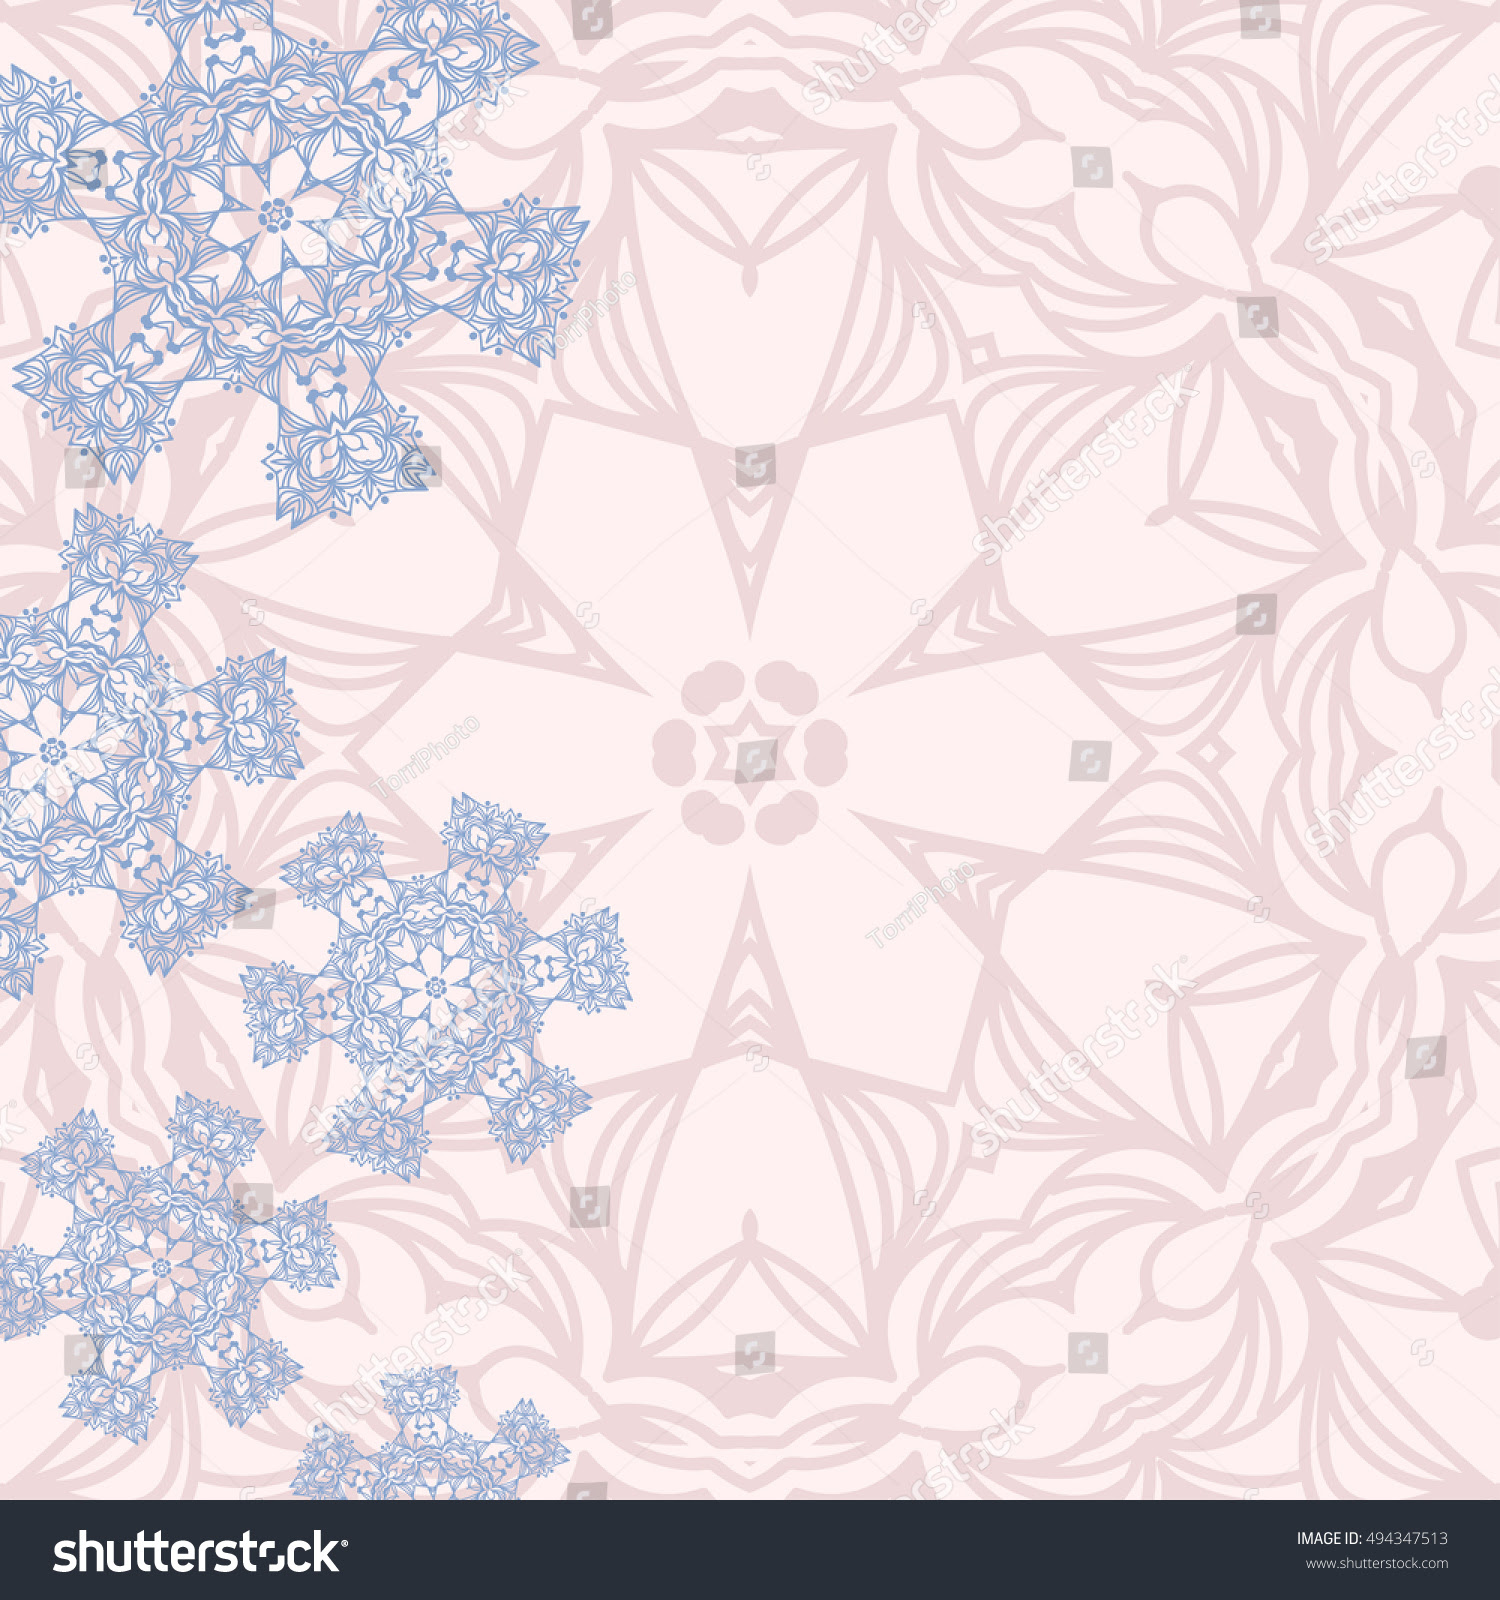 http://www.shutterstock.com/pic-494347513/stock-vector-rose-quartz-and-serenity-blue-background-with-abstract-snowflakes-for-winter-wedding-card-or-invitation-copy-space-vector-illustration-eps8.html